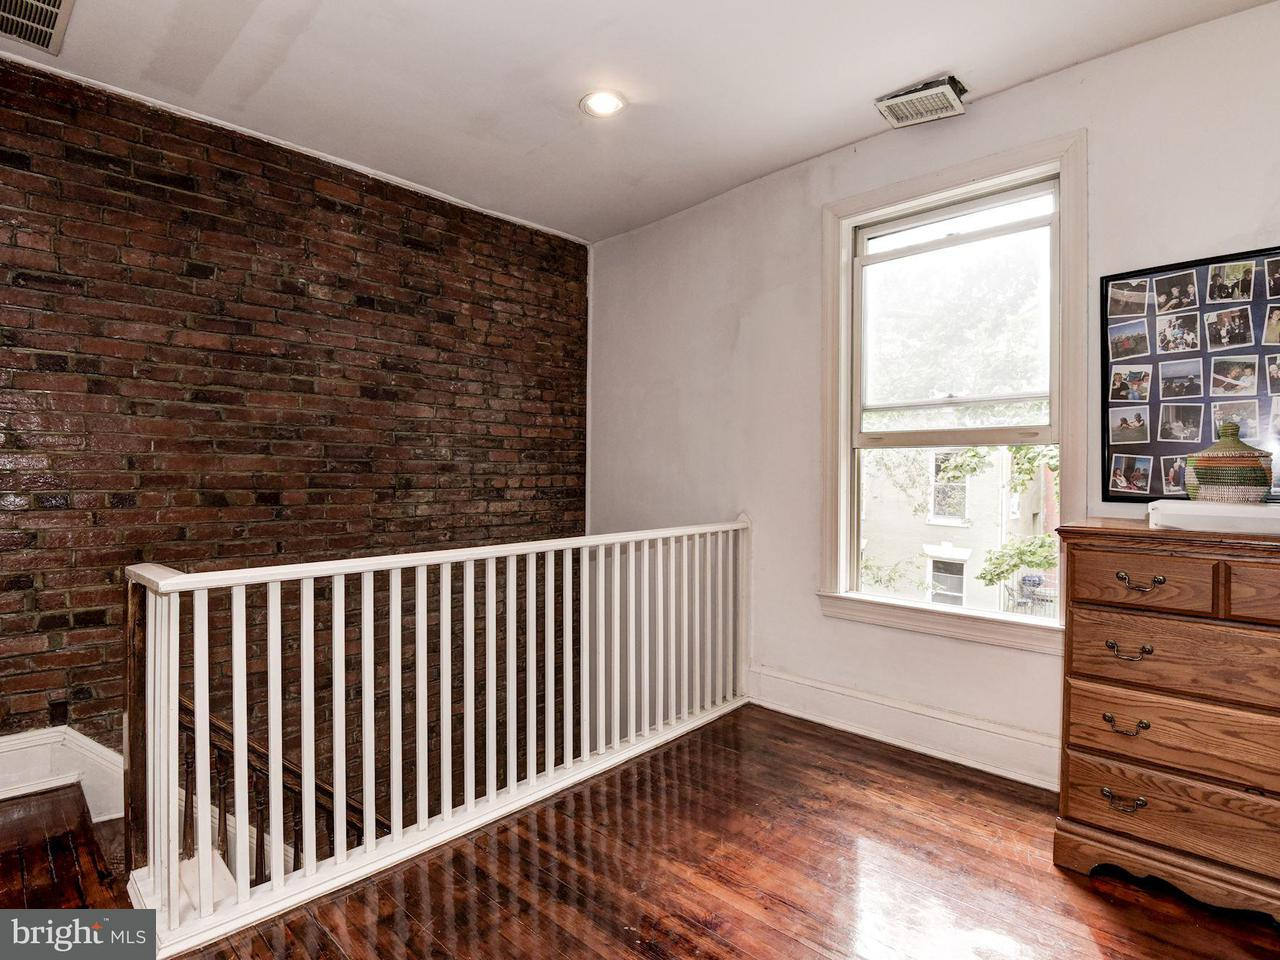 Additional photo for property listing at 2305 17th St Nw 2305 17th St Nw Washington, 컬럼비아주 20009 미국